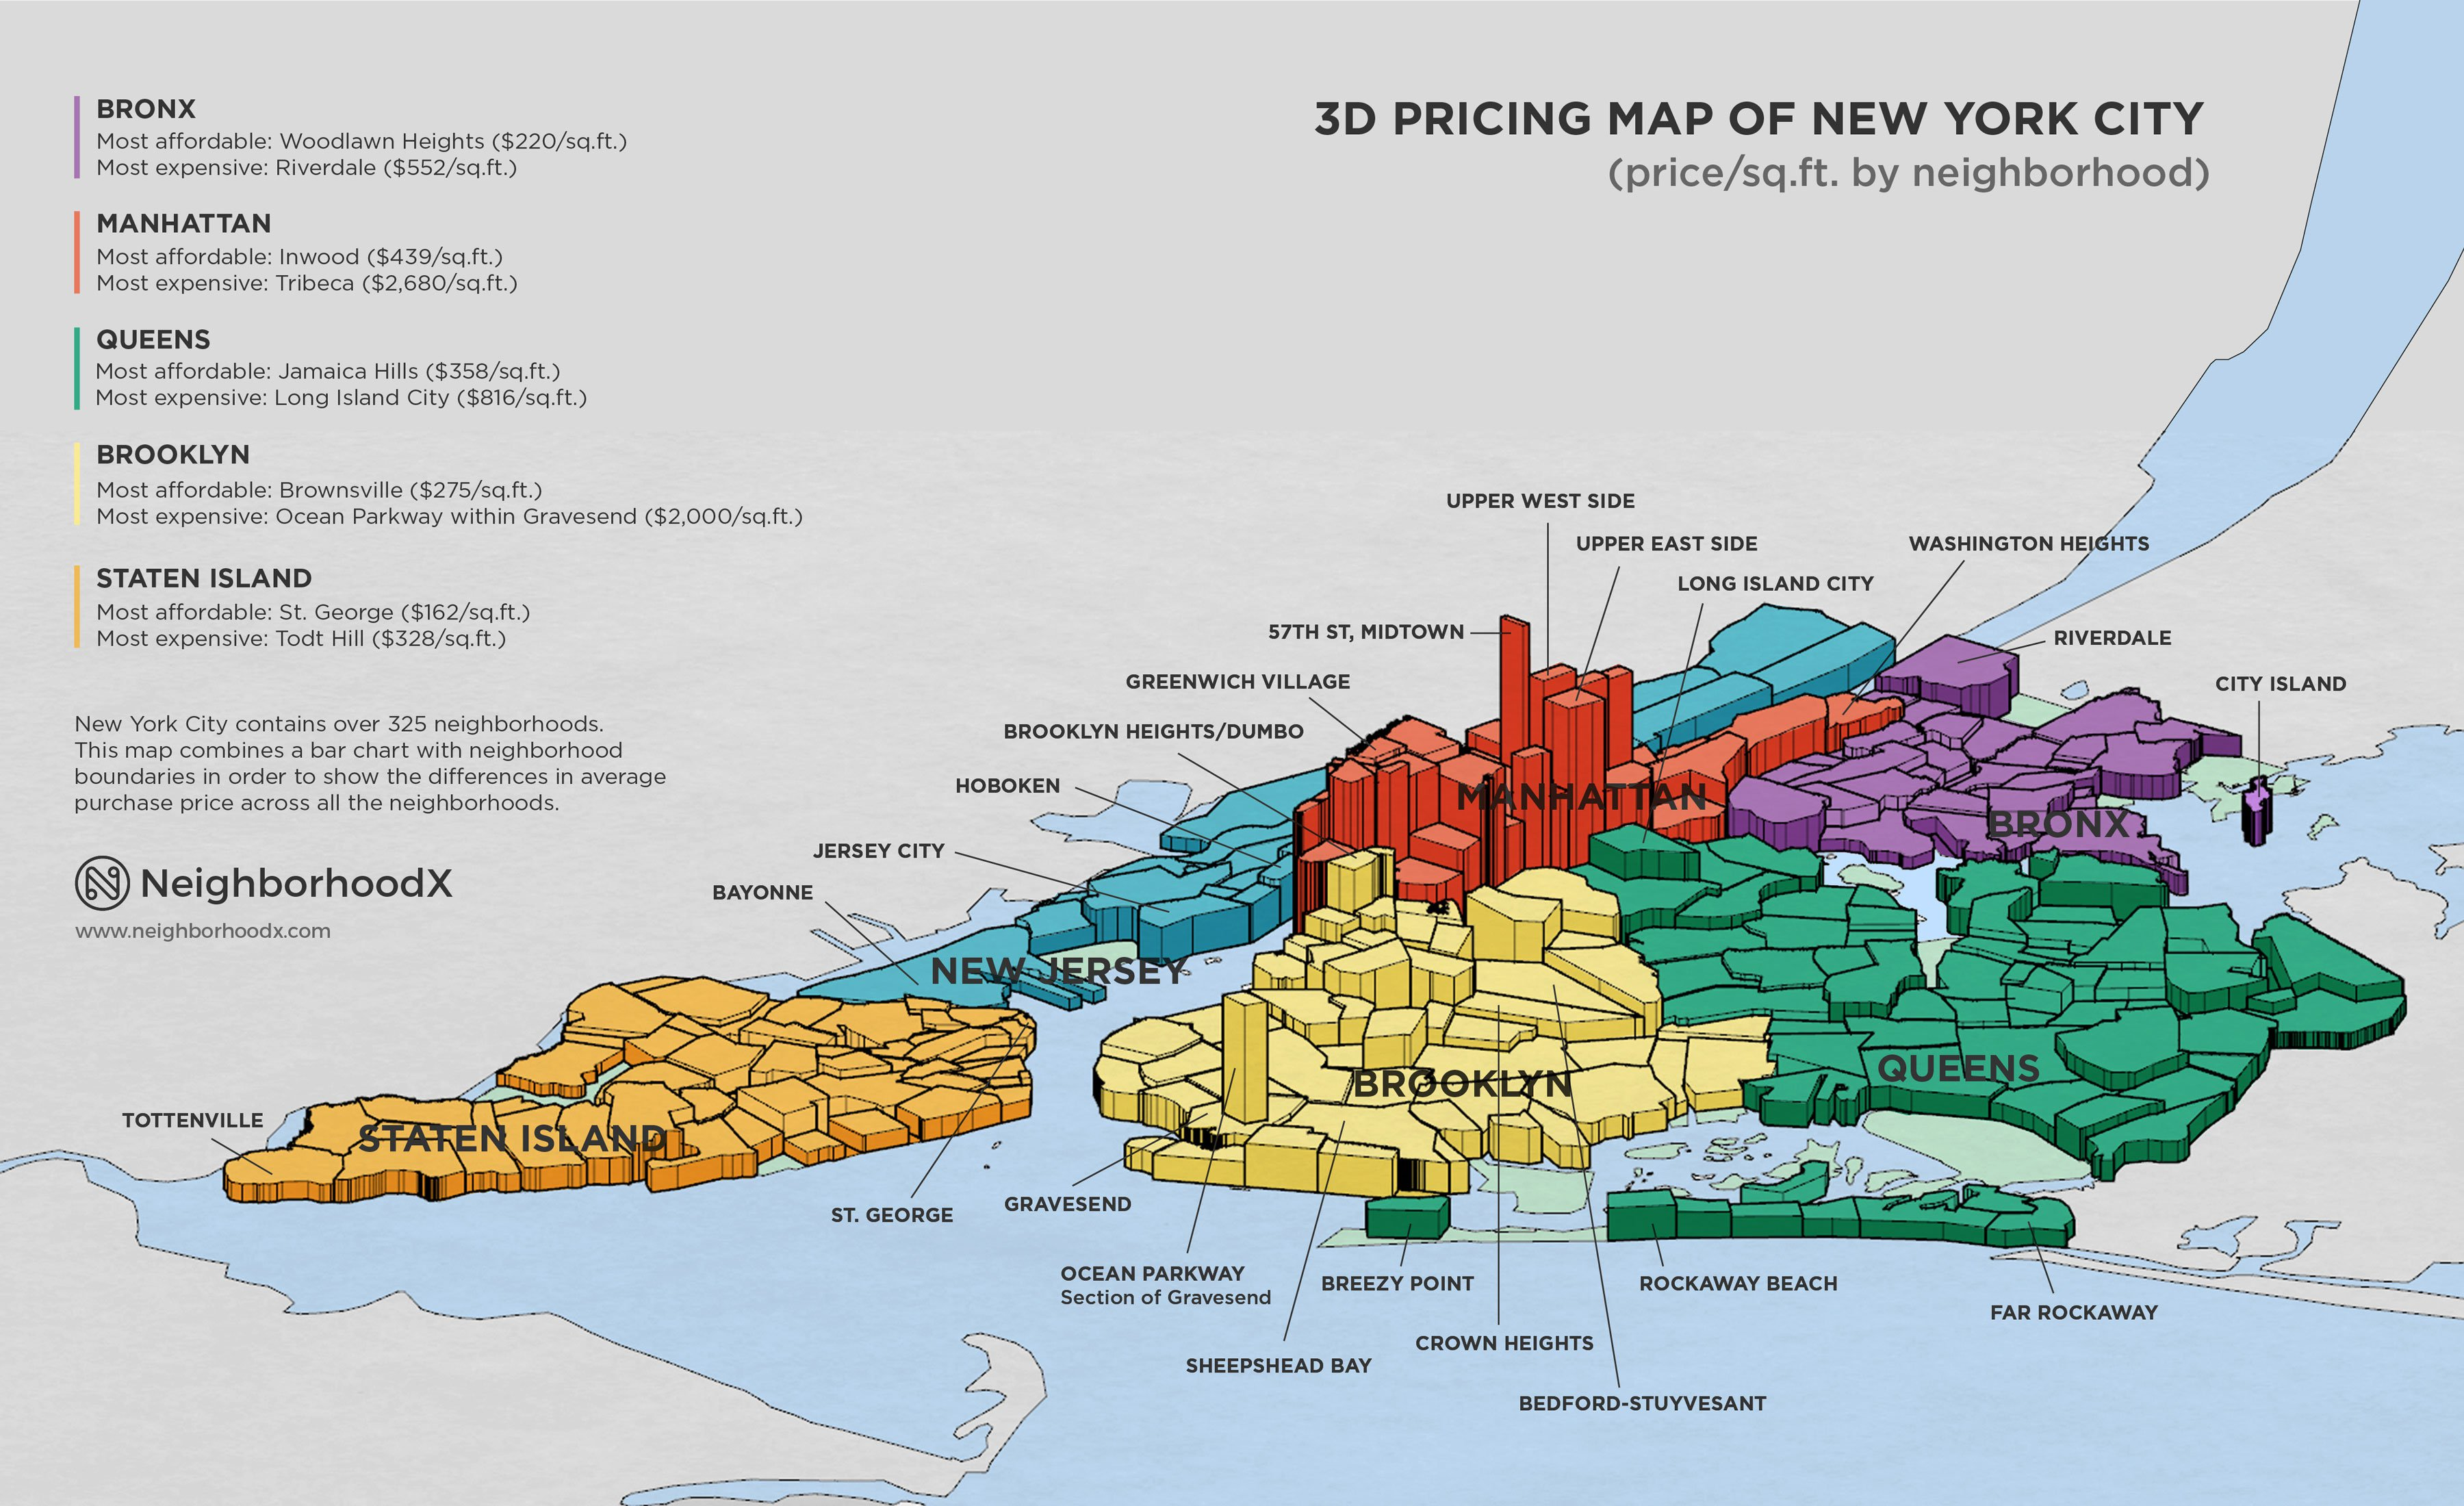 3D Pricing Map Of New York City Viewing NYC